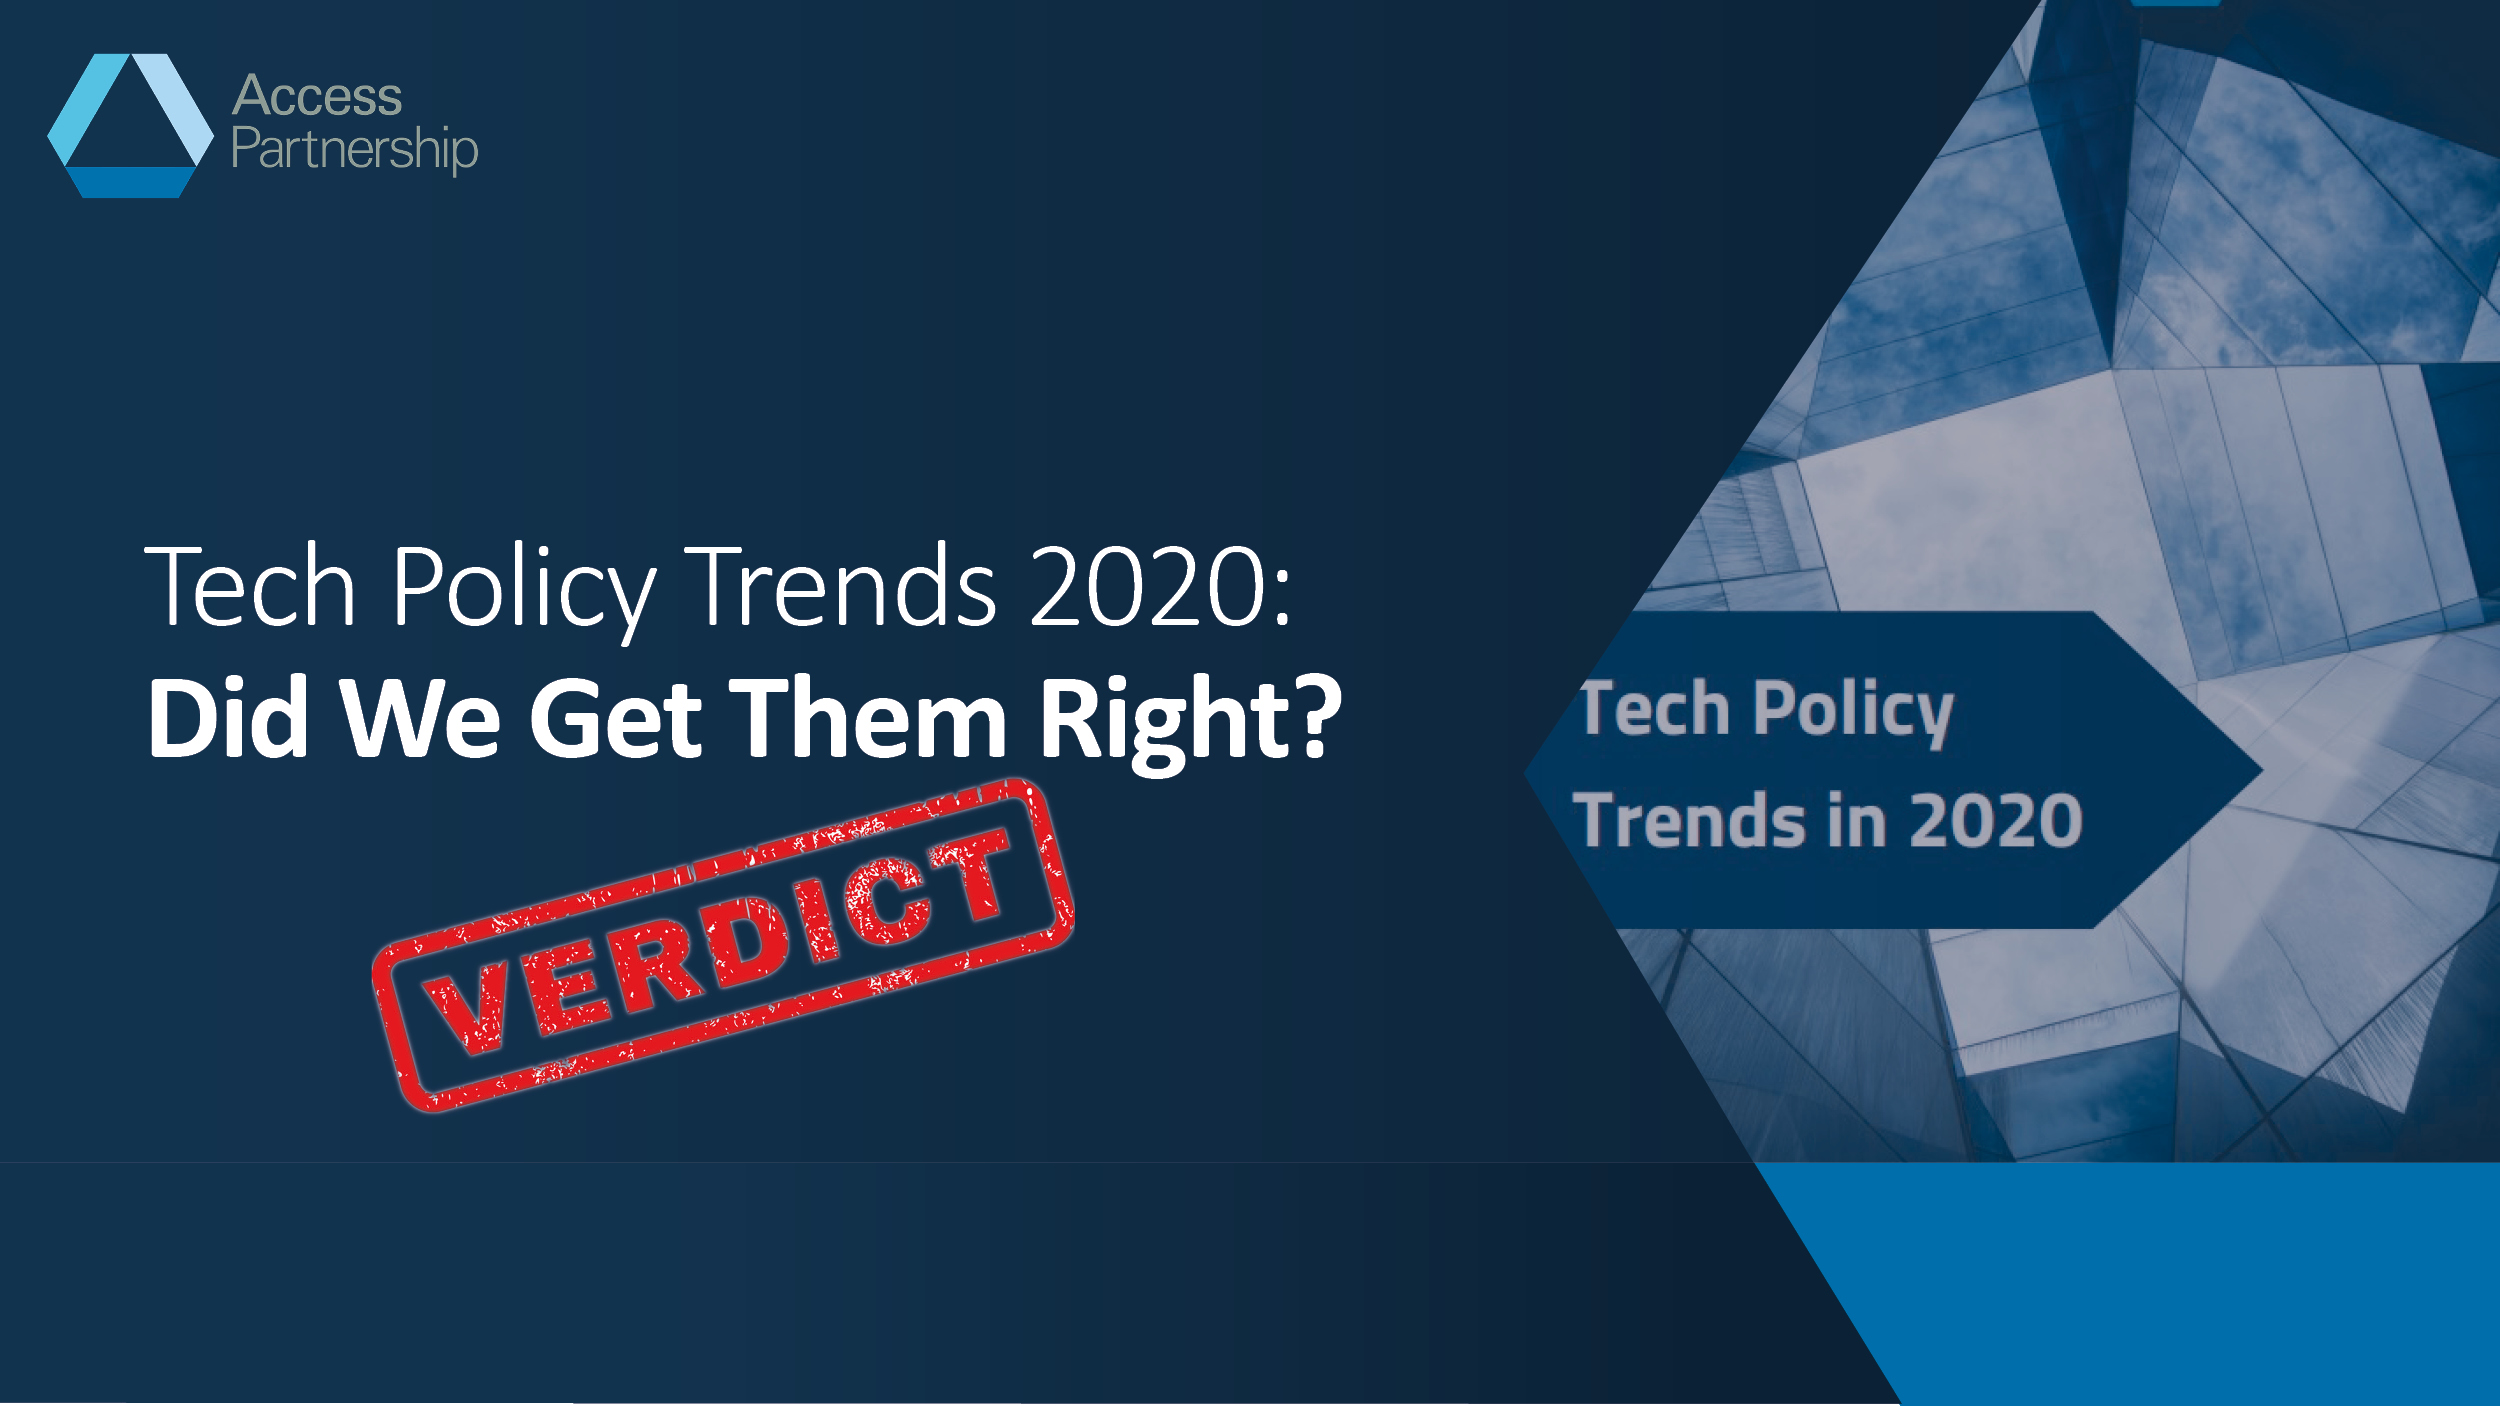 Tech Policy Trends 2020: Did We Get Them Right?